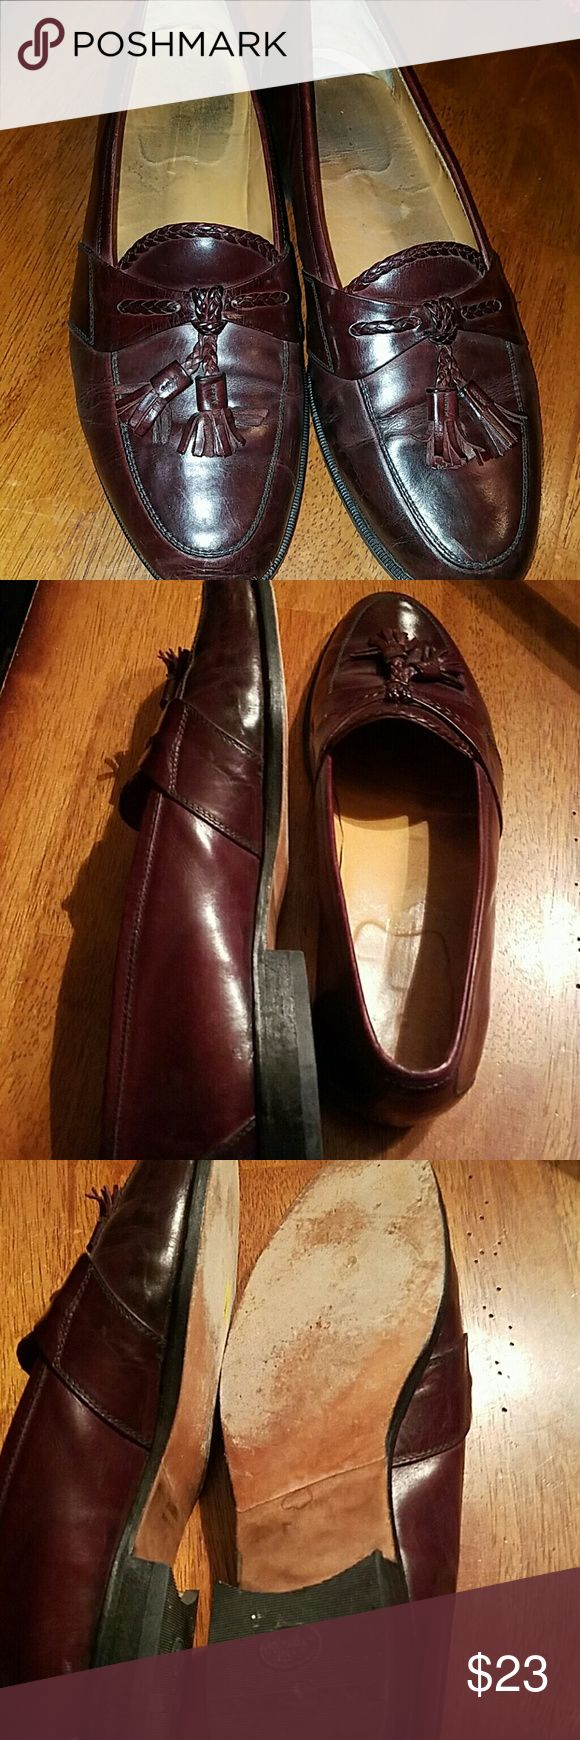 JOHNSON AND MURPHY ITALIAN MADE LEATHER SZ 10 Johnston and Murphy men's leather loafers made in Italy.  Excellent condition with minimal wear. From a clean non-smoking home. Thank you for looking Johnston & Murphy Shoes Loafers & Slip-Ons